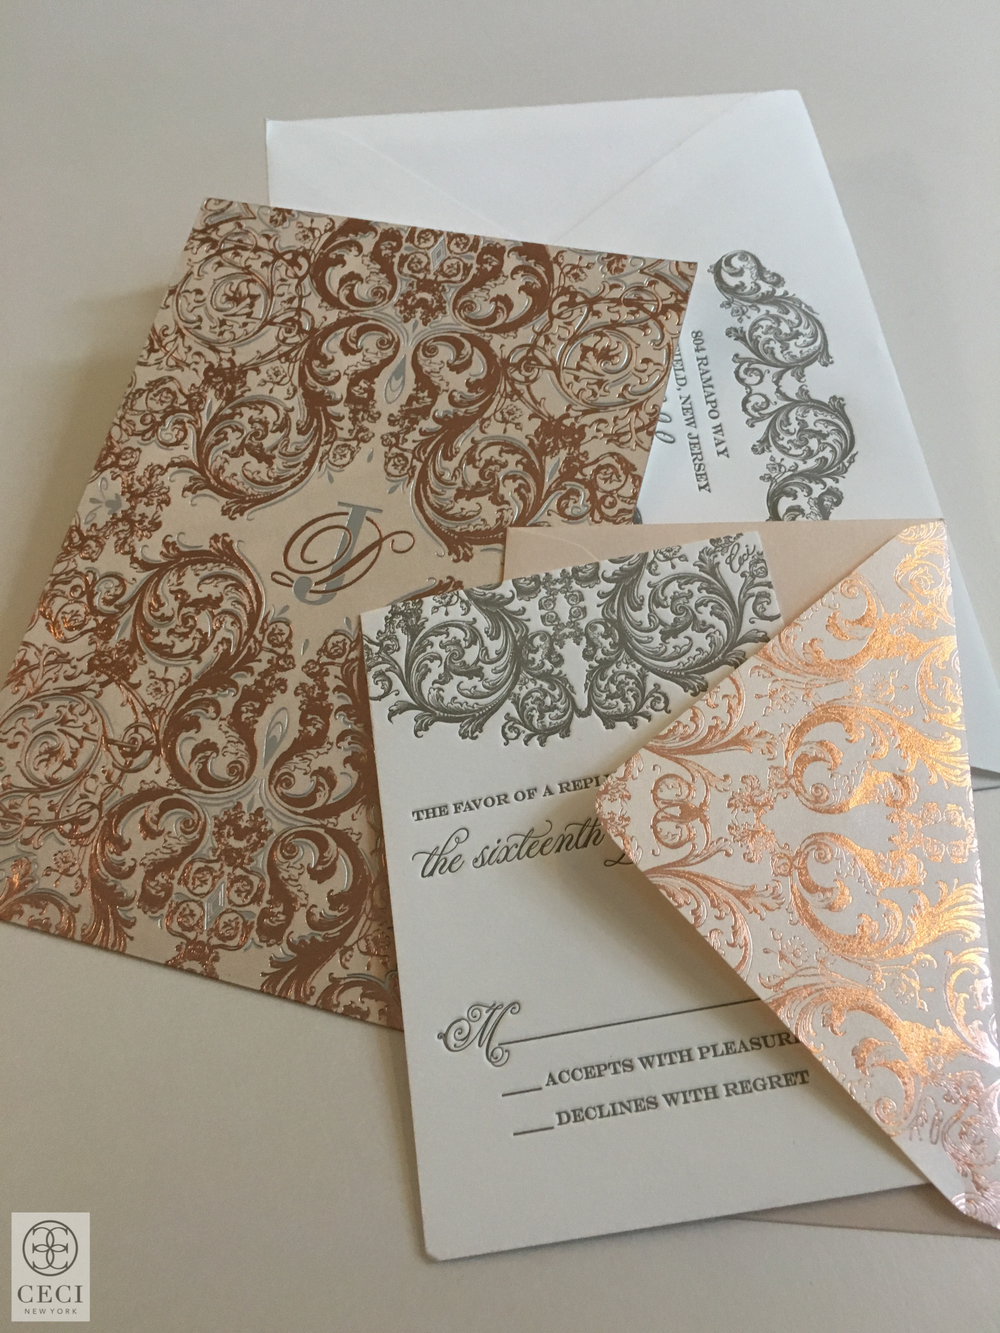 Ceci_New_York_Pierre_Invitations_Wedding_New_York_Elegance_Rose_Gold_Baroque_Classic_Foil_Stamping_Custom_Couture_Personalized.jpg